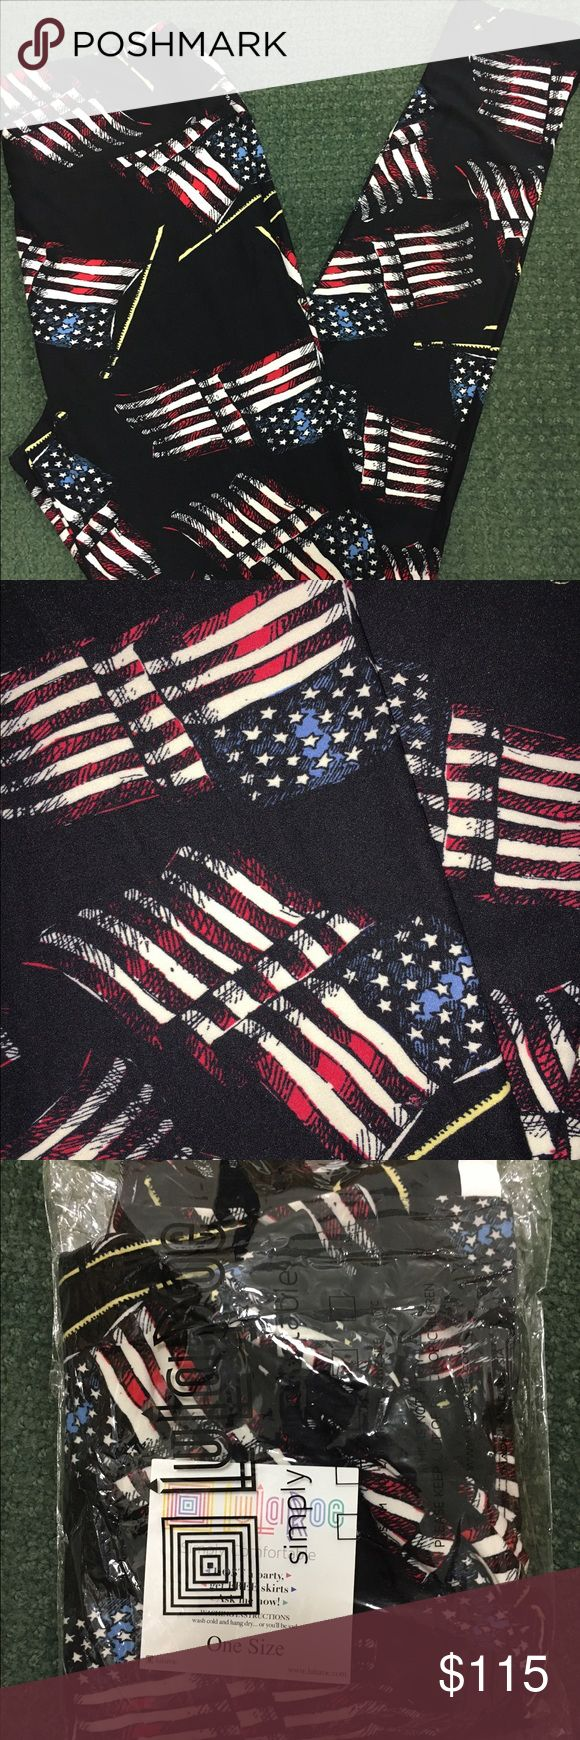 Lularoe RARE OS BLACK AMERICAN FLAG PRINT  JUST RELEASED! Unicorn! Brand new, RARE HARD TO FIND HTF, unworn, Lularoe, OS One Size print pattern Leggings. MADE IN CHINA!  Super rare 4th of July capsule BLACK background with American flag print  Fits sizes 0-12.  Cold water wash, hang to dry.  Buttery soft, comfortable, LulaRoe leggings! New, never worn! Will ship within 24 hours of payment :)   Thank you!!  Americana capsule rare patriotic flag parade fireworks stars Uncle Sam BBQ 4th of…